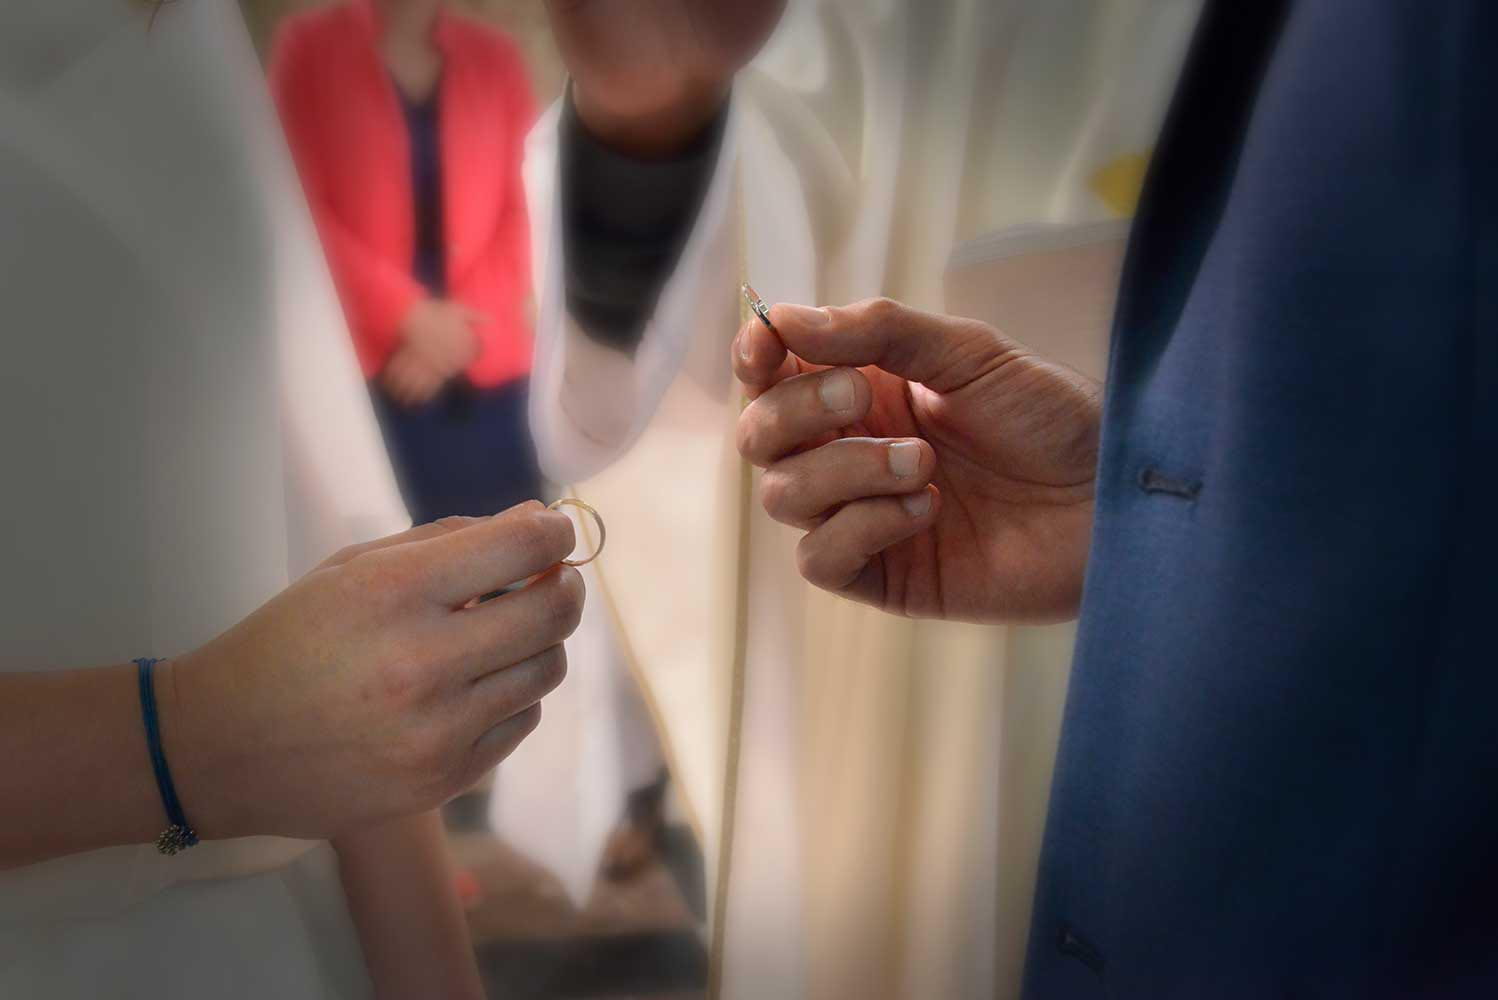 Wedding ring exchange during church ceremony